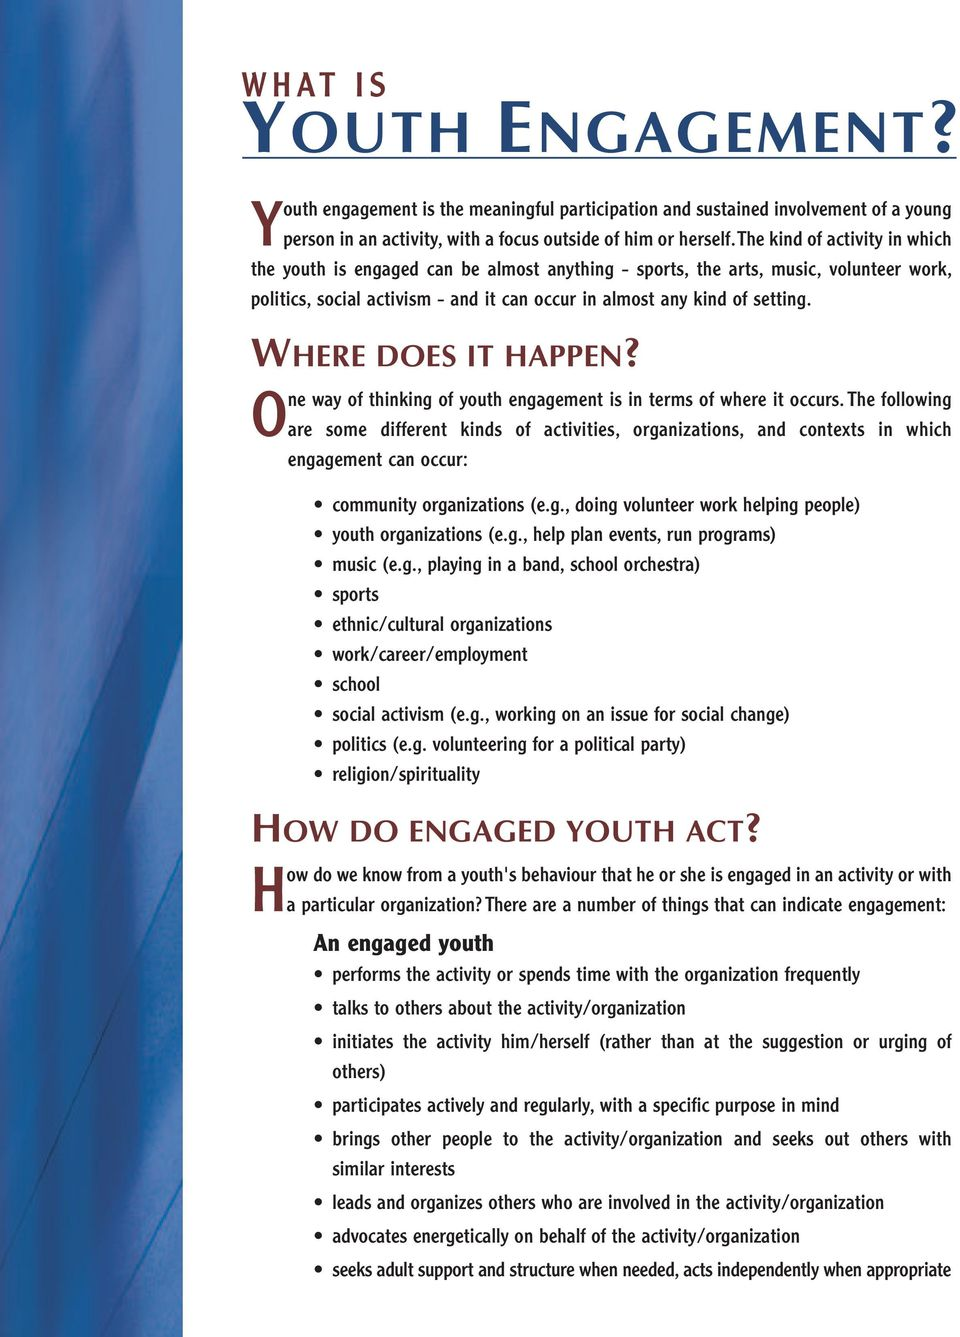 WHERE DOES IT HAPPEN? One way of thinking of youth engagement is in terms of where it occurs.